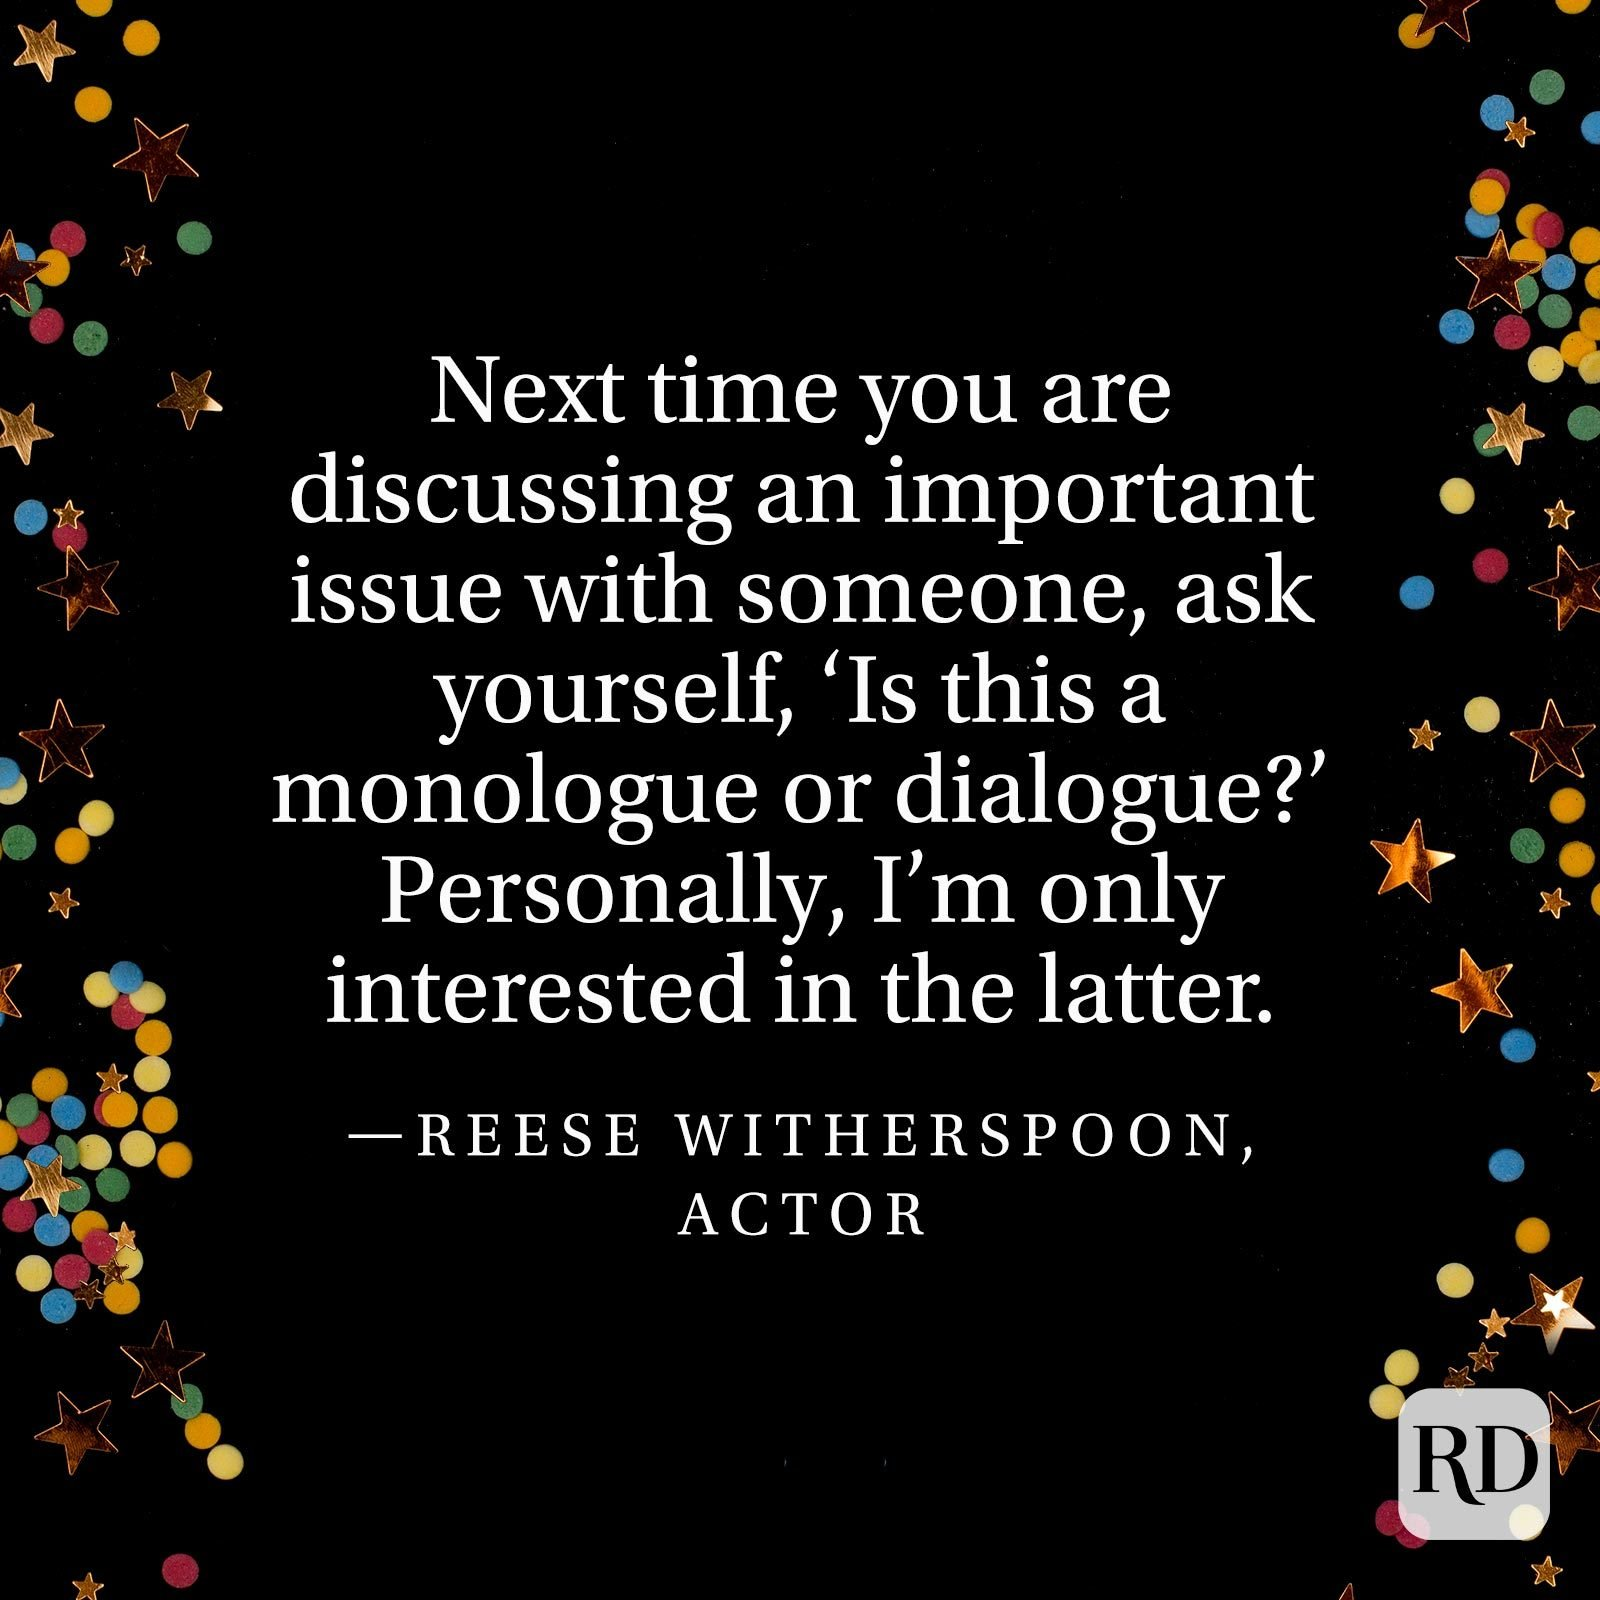 """Next time you are discussing an important issue with someone, ask yourself, 'Is this a monologue or dialogue?' Personally, I'm only interested in the latter."" —Reese Witherspoon, actor"